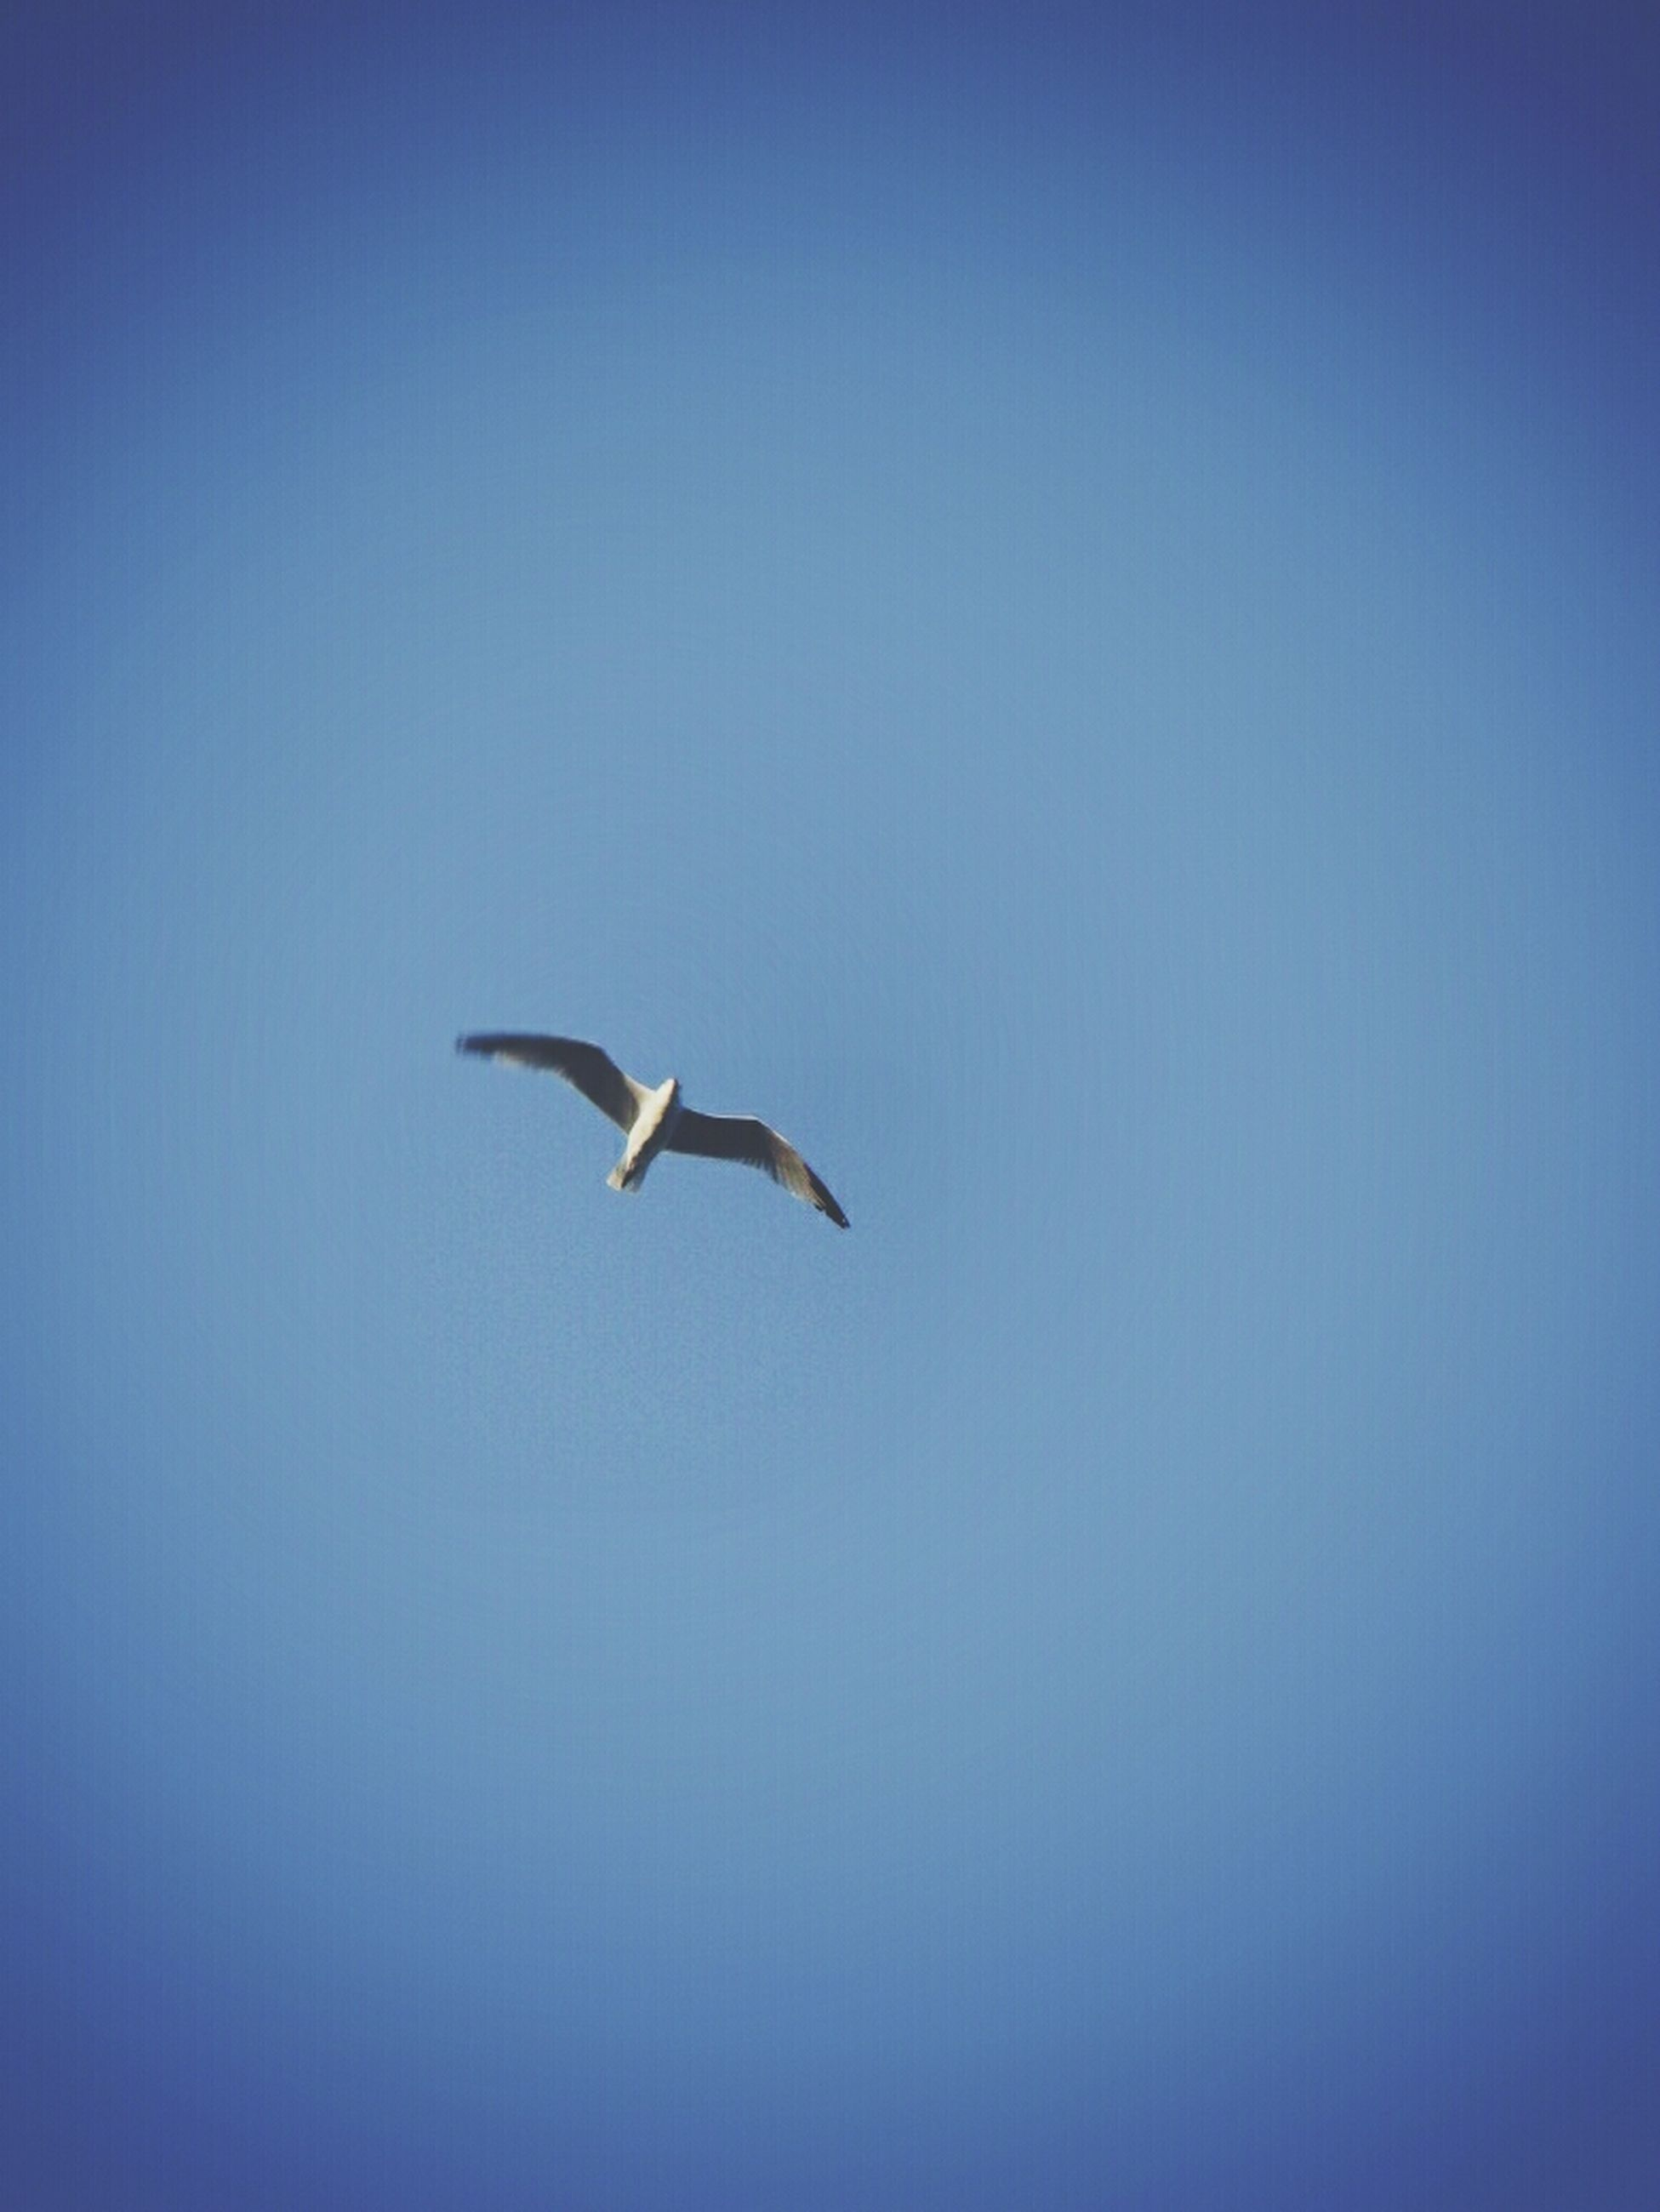 bird, animal themes, flying, animals in the wild, one animal, wildlife, clear sky, spread wings, copy space, blue, seagull, mid-air, nature, low angle view, beauty in nature, no people, outdoors, day, sky, zoology